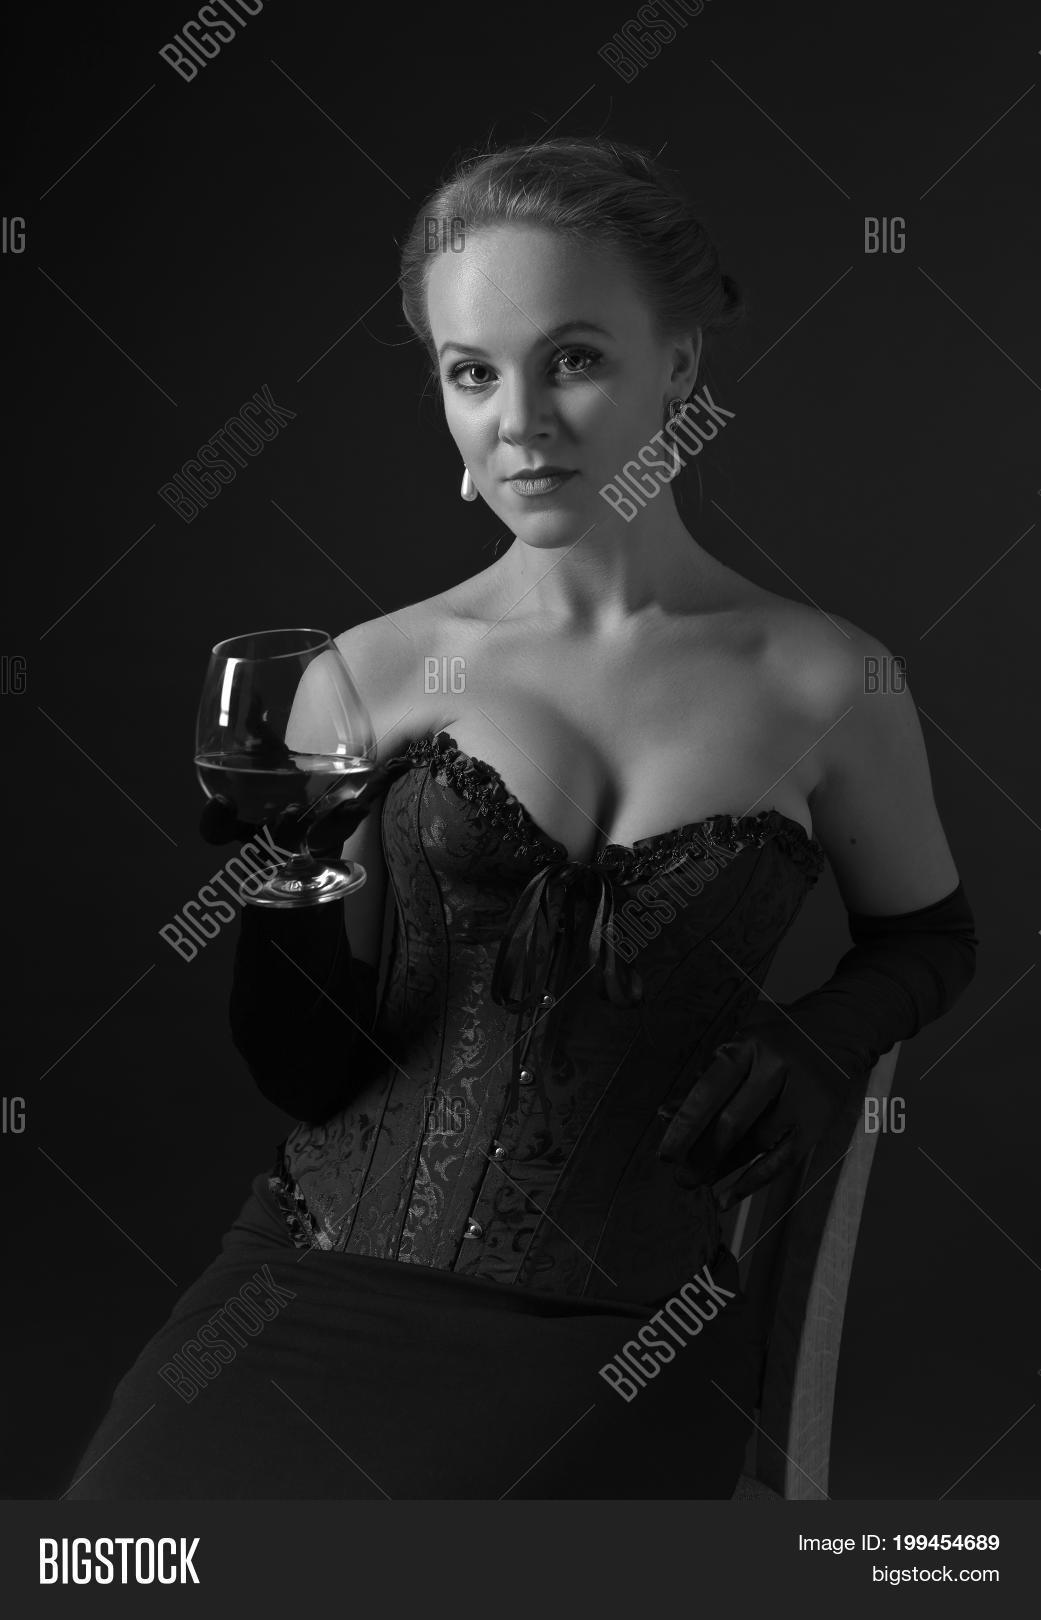 4120858a753 Portrait of young beautiful woman in black corset with glass of brandy. Beautiful blonde with perfect hair and professional make-up in retro stile .